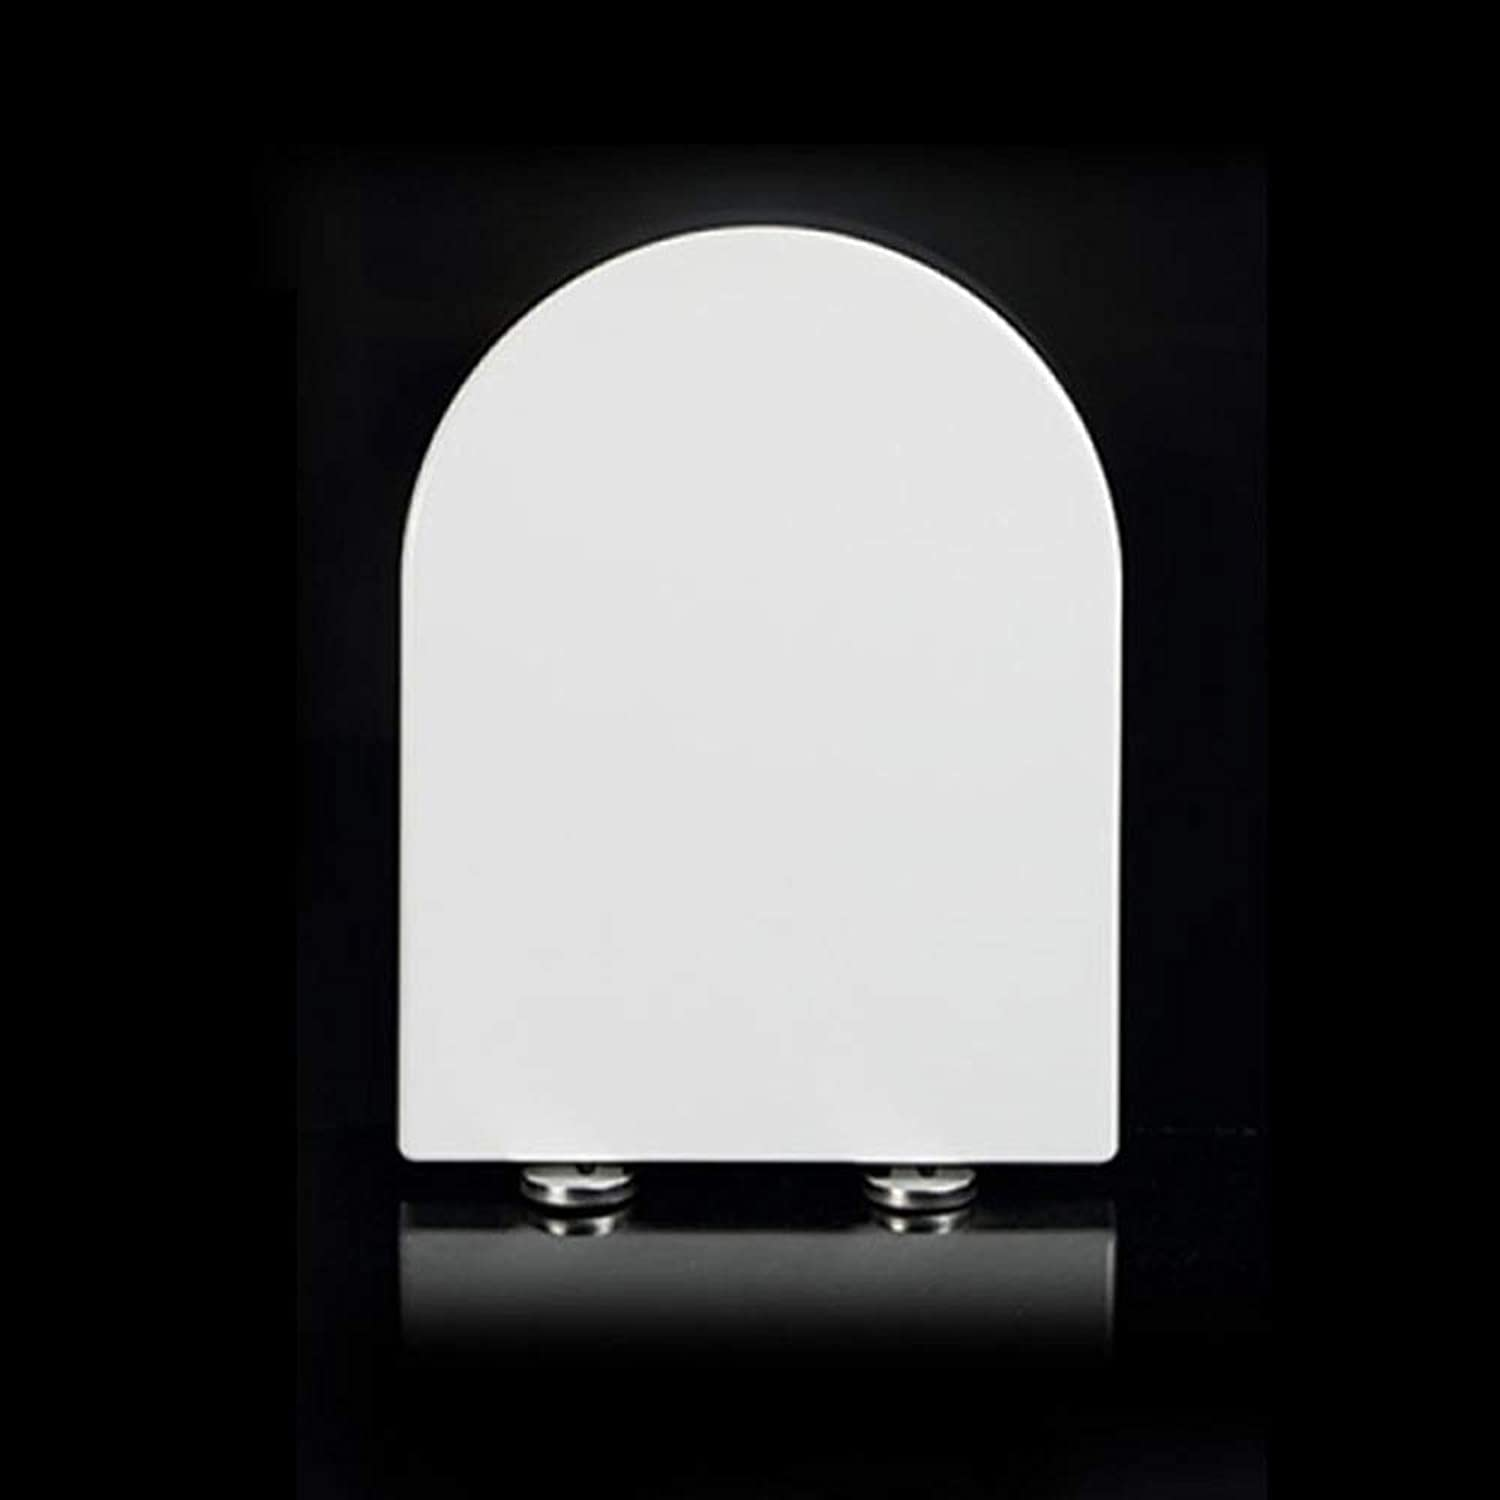 LBRVICTRY Toilet Seat For Household Use U-Shaped White With Soft Close For Top Mounting,White-U A